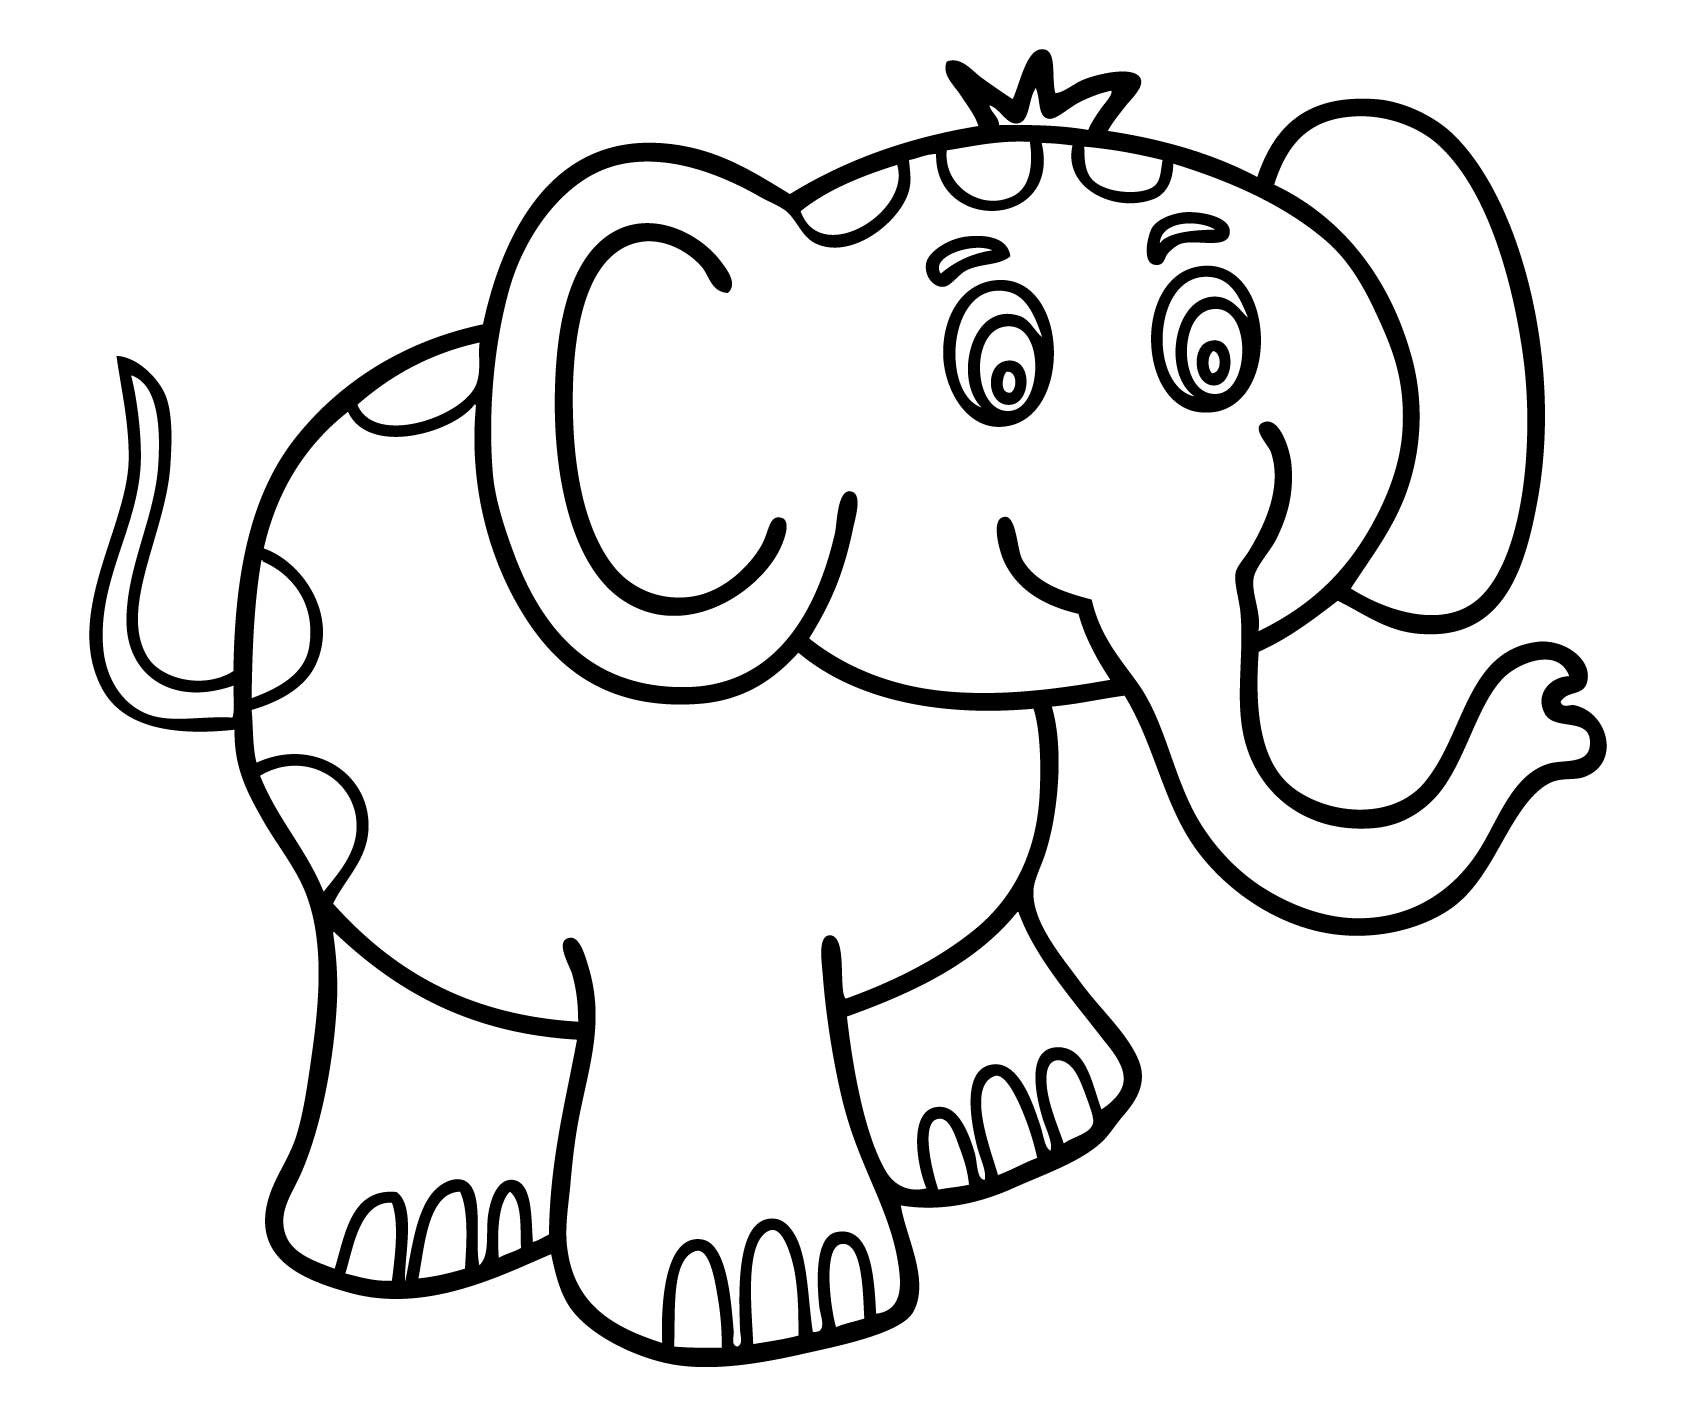 1701x1419 Toddlers Coloring Pages Cartoon Elephant Animals For Kids Unique